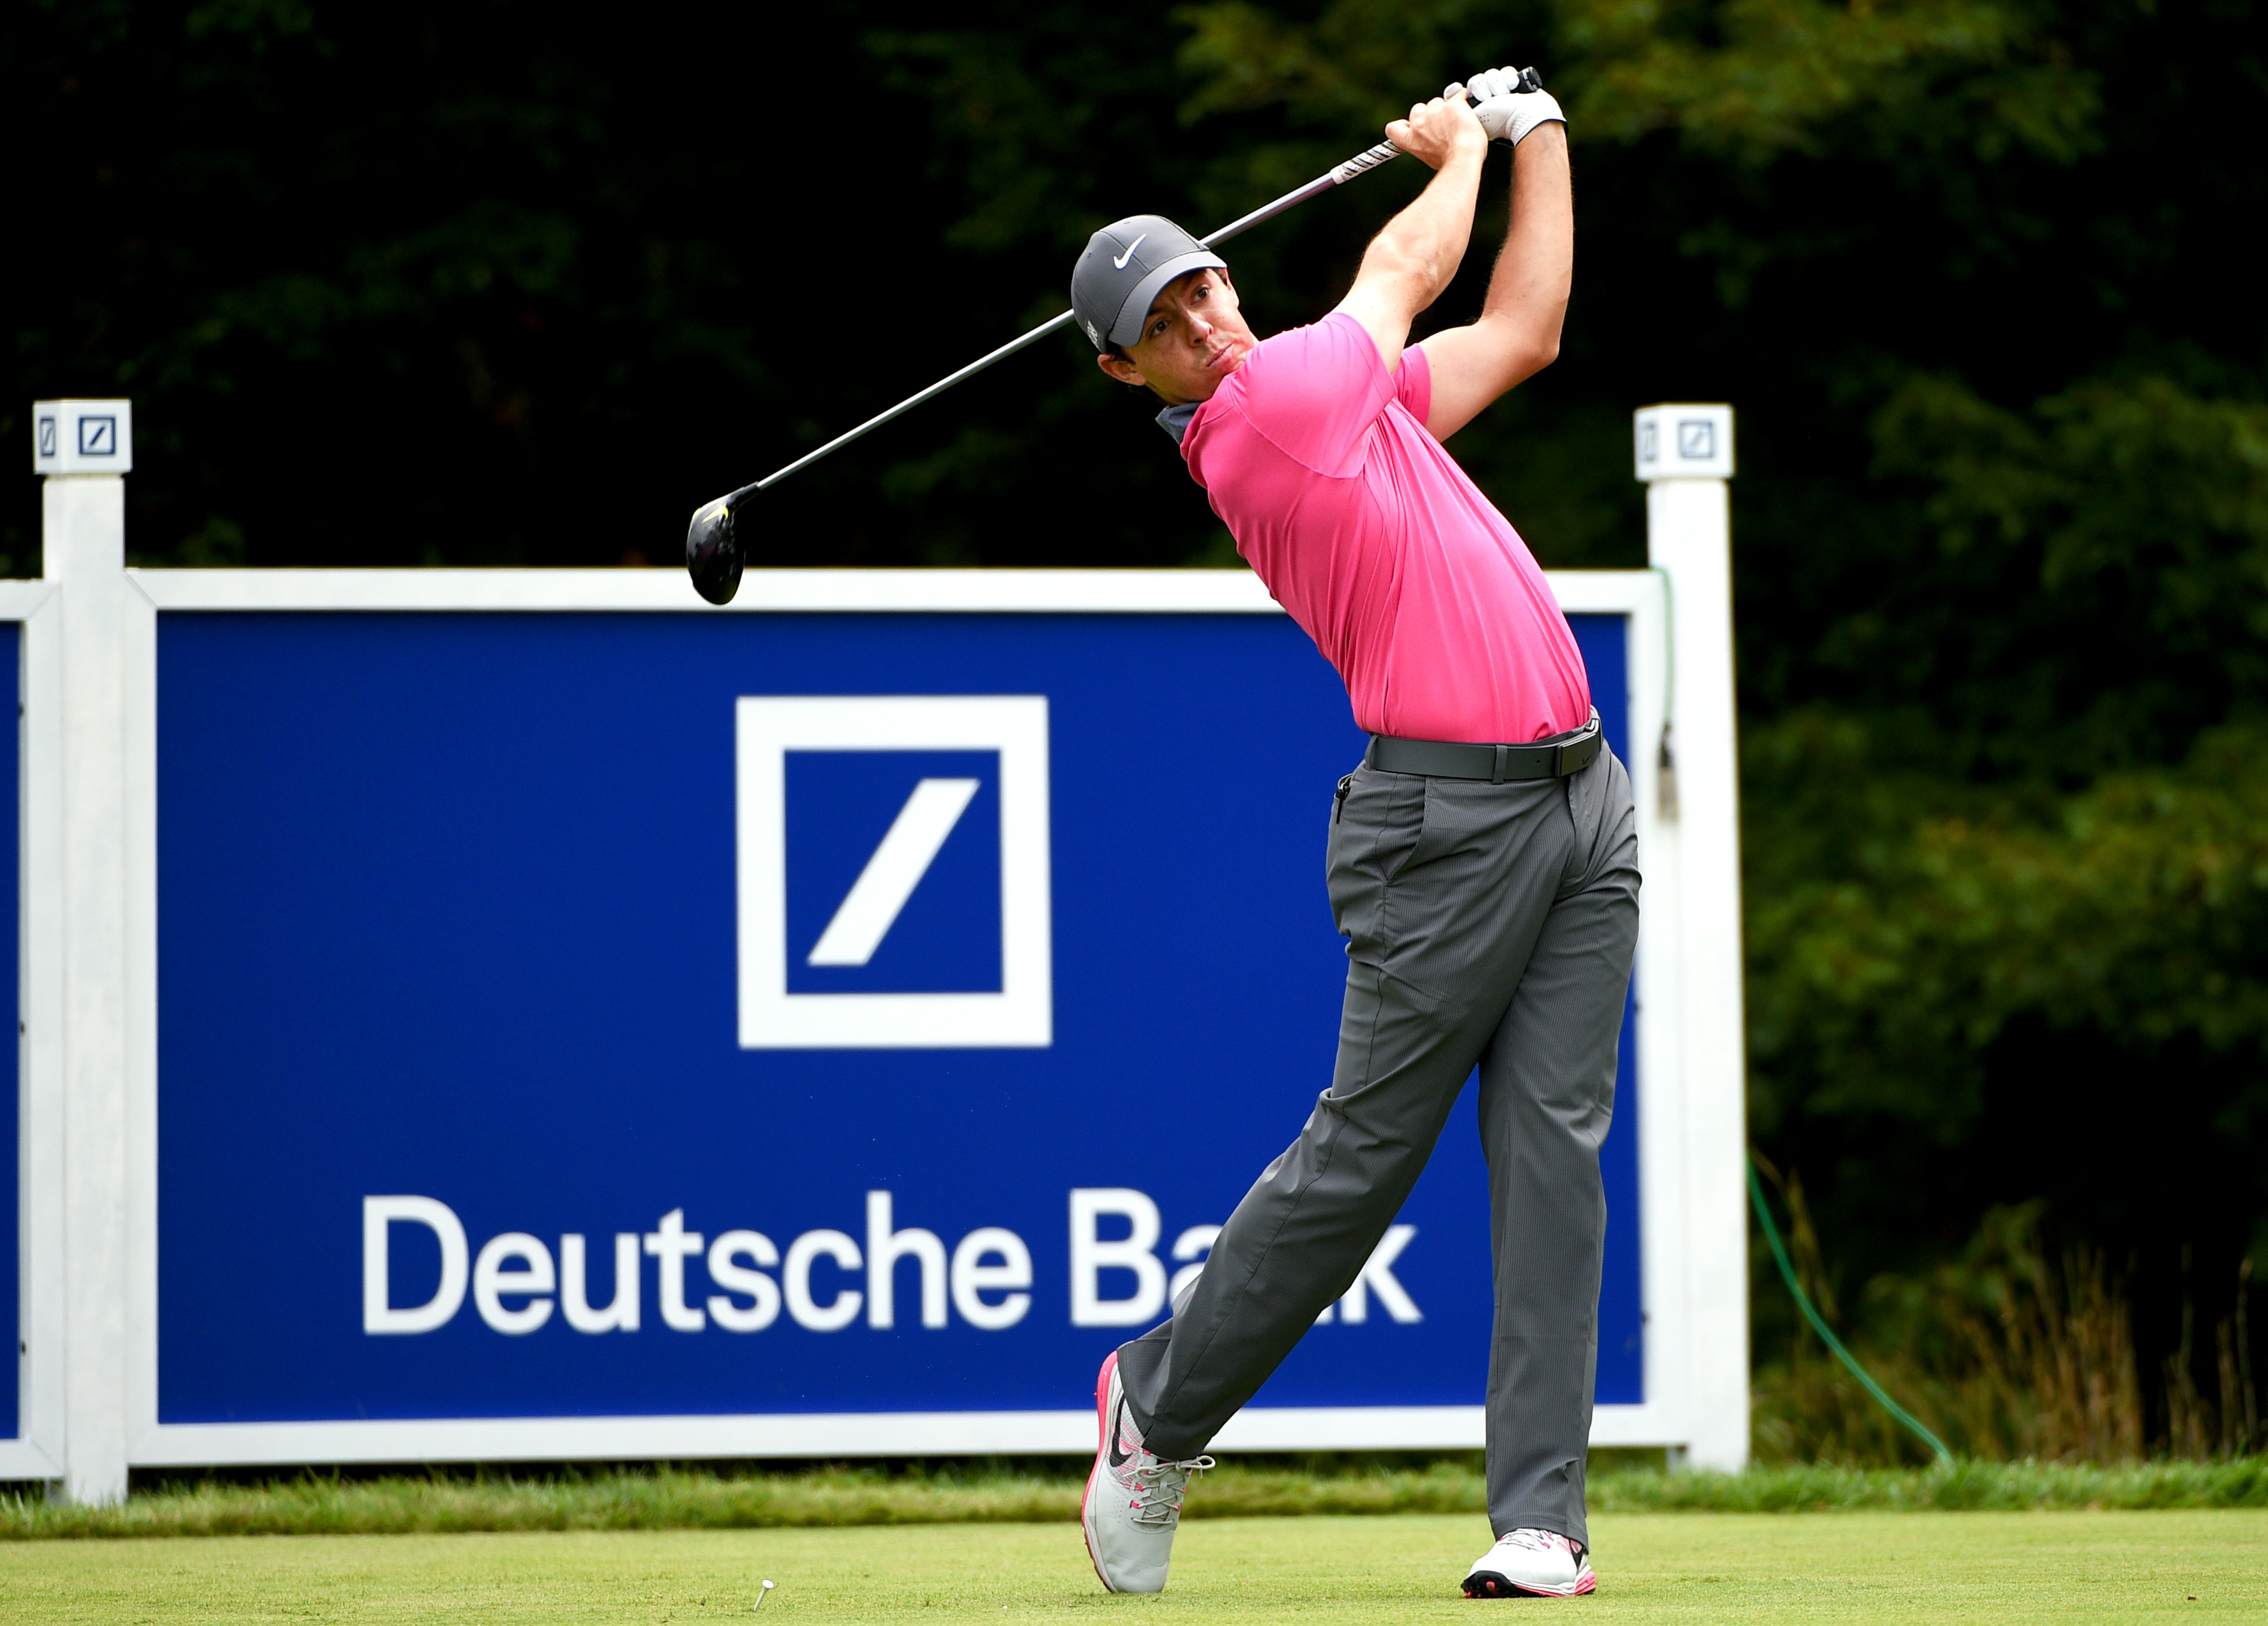 McIlroy will likely lose top spot in the rankings this week (Photo: Getty Images)